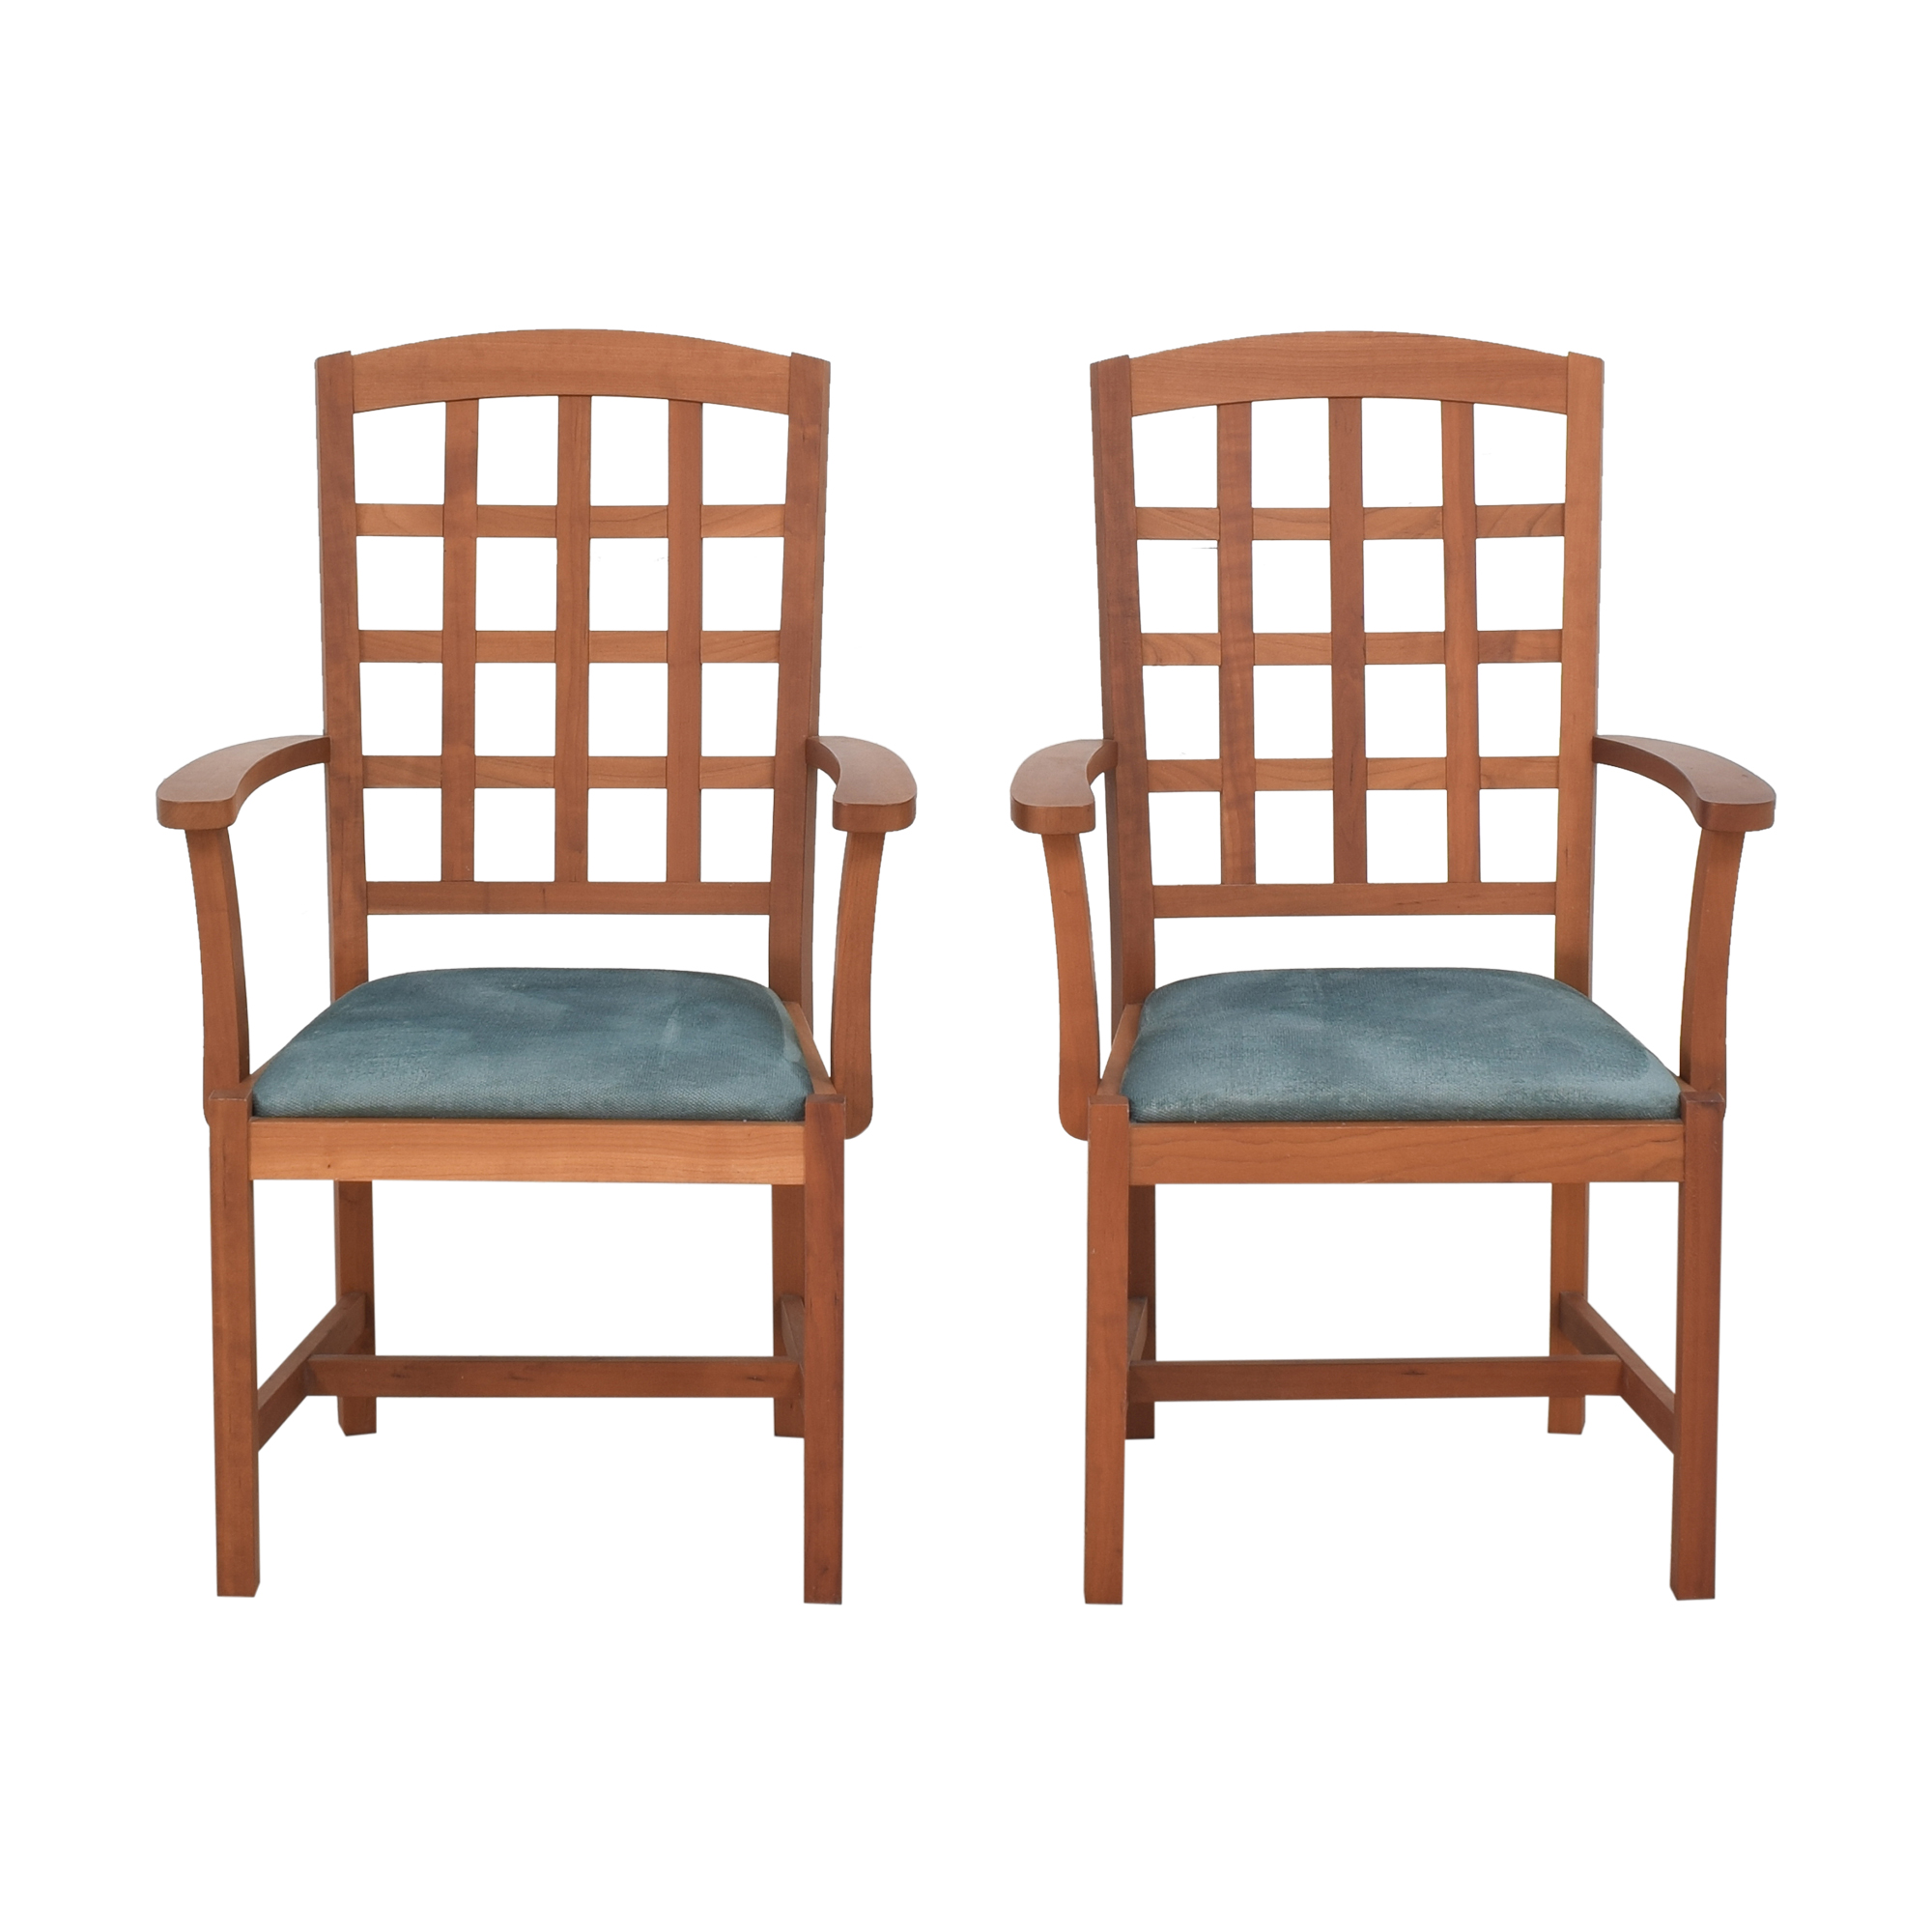 Scott Jordan Furniture Scott Jordan Furniture Grid Back Dining Chairs brown and blue